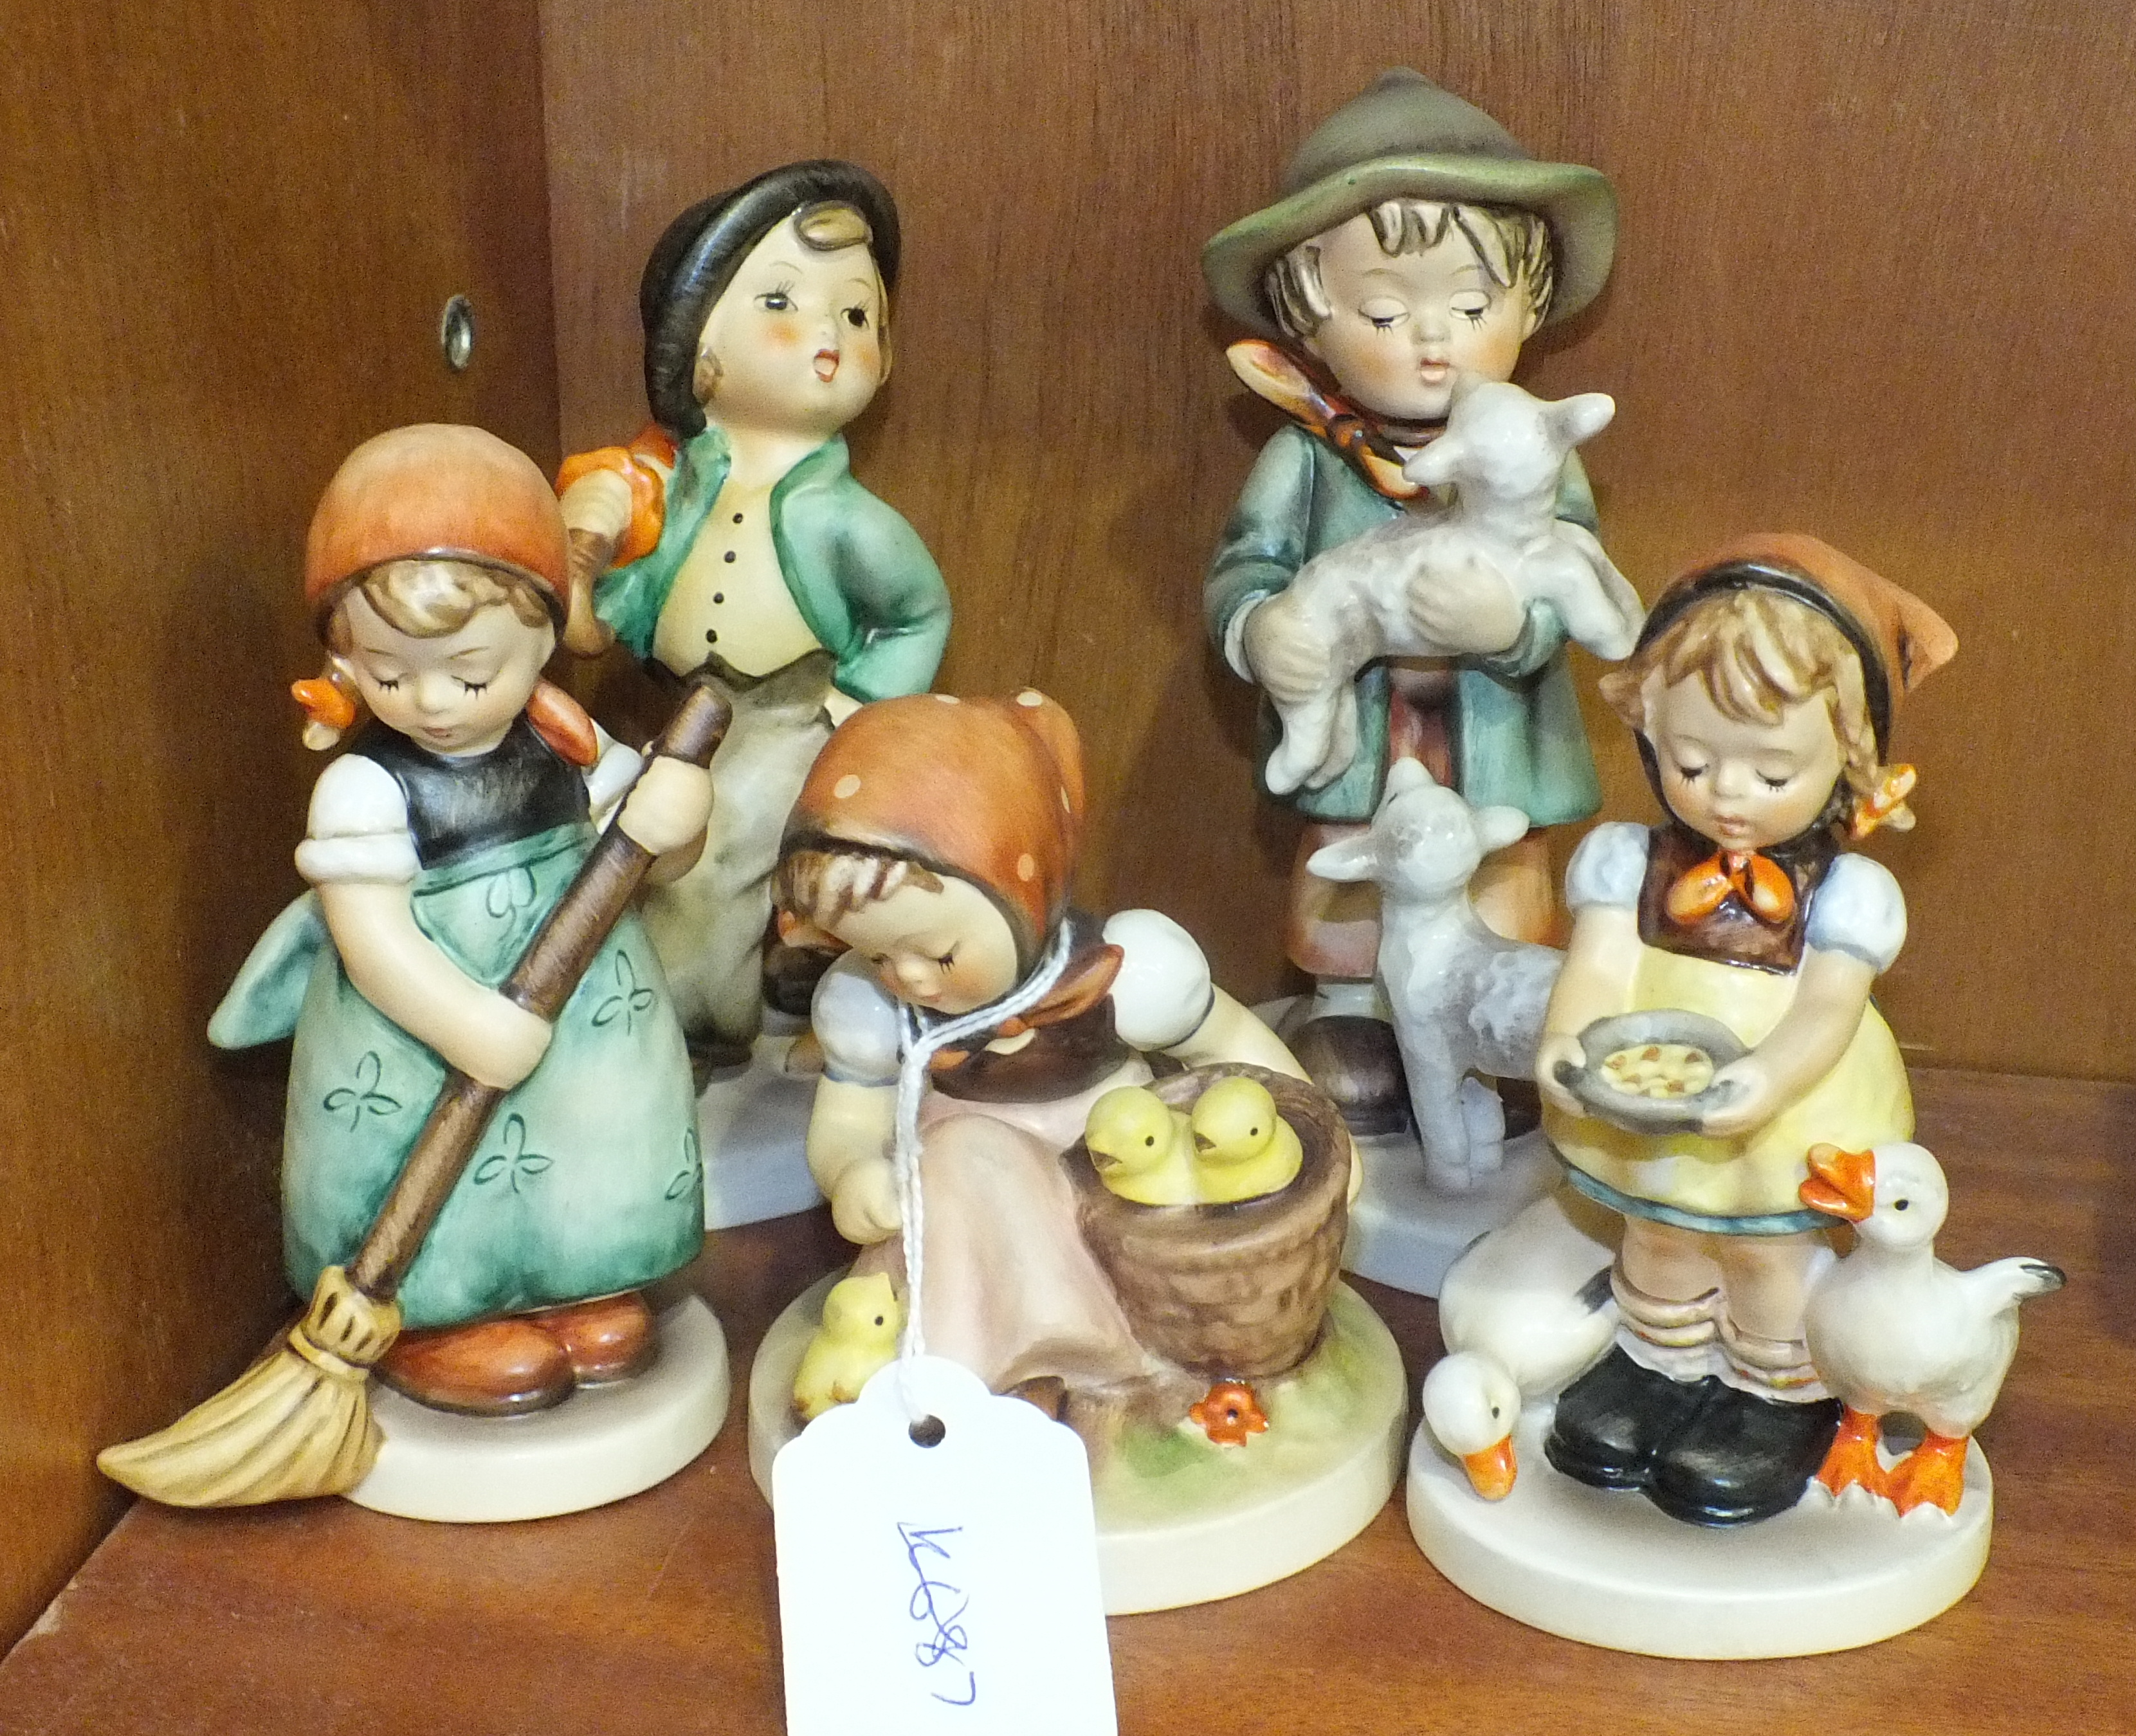 Lot 110 - A collection of five Goebel figures, 'Shepherd's Boy', 13.5cm, 'Chick Girl', 9cm, 'Little